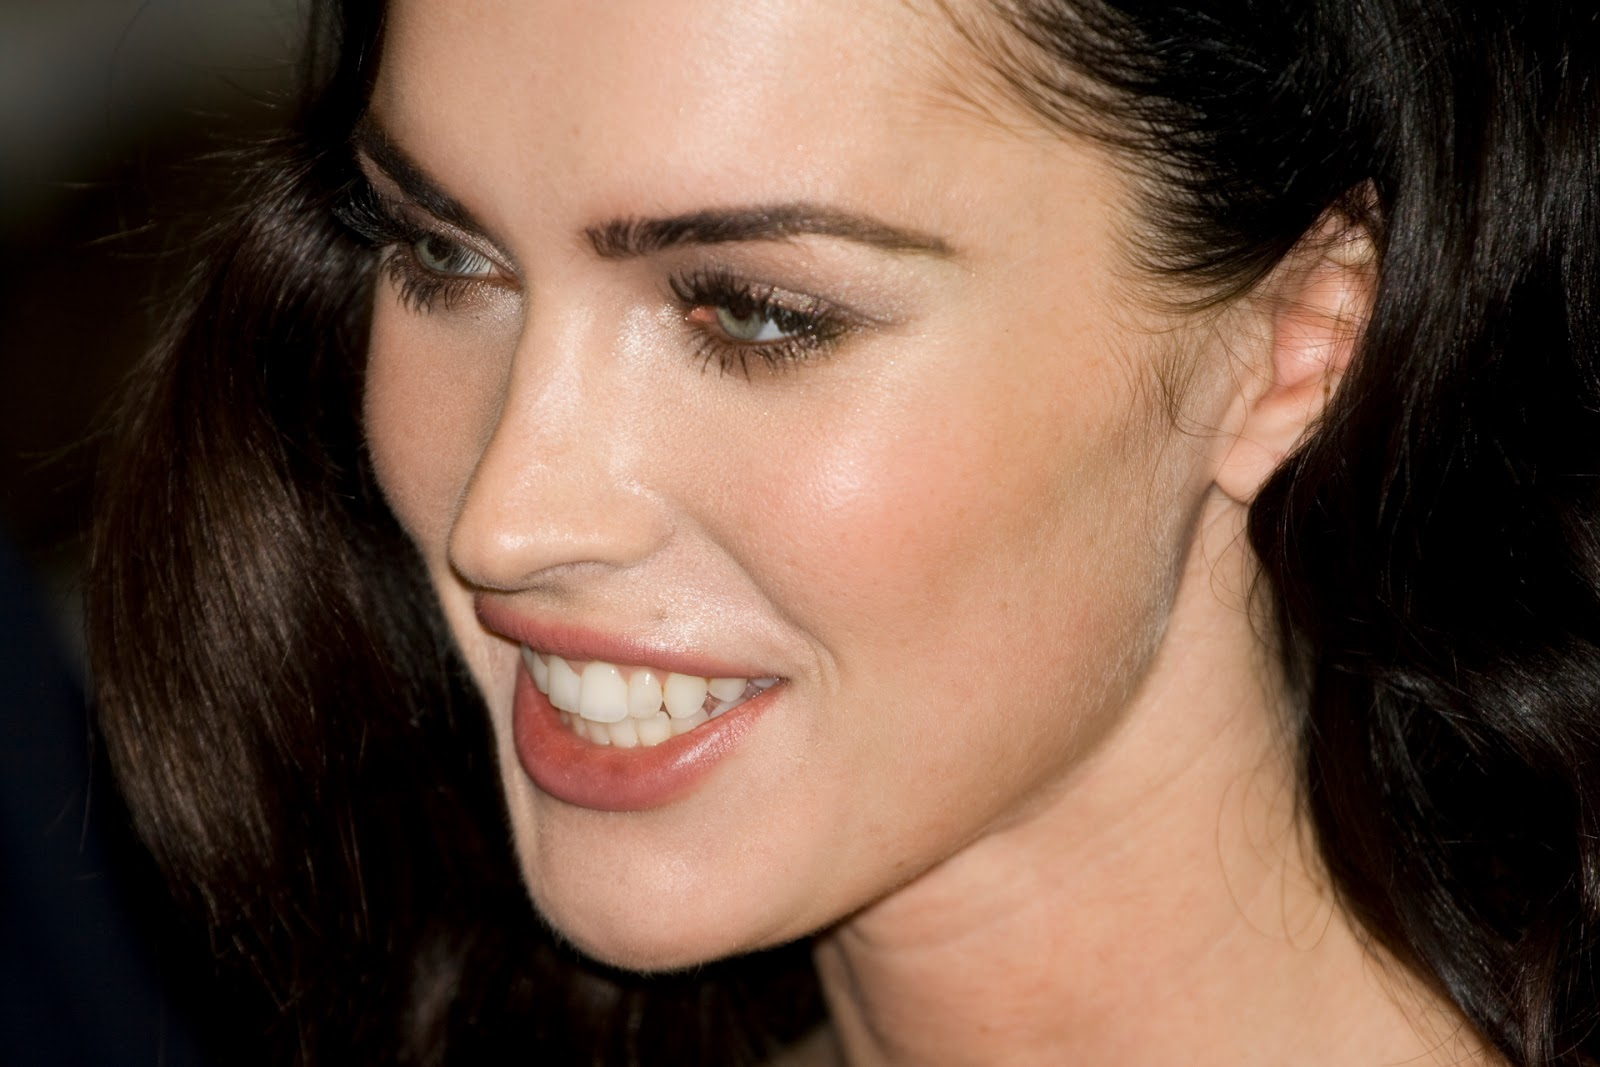 Celebrities with Acne Prone Skin, Scars, and Related